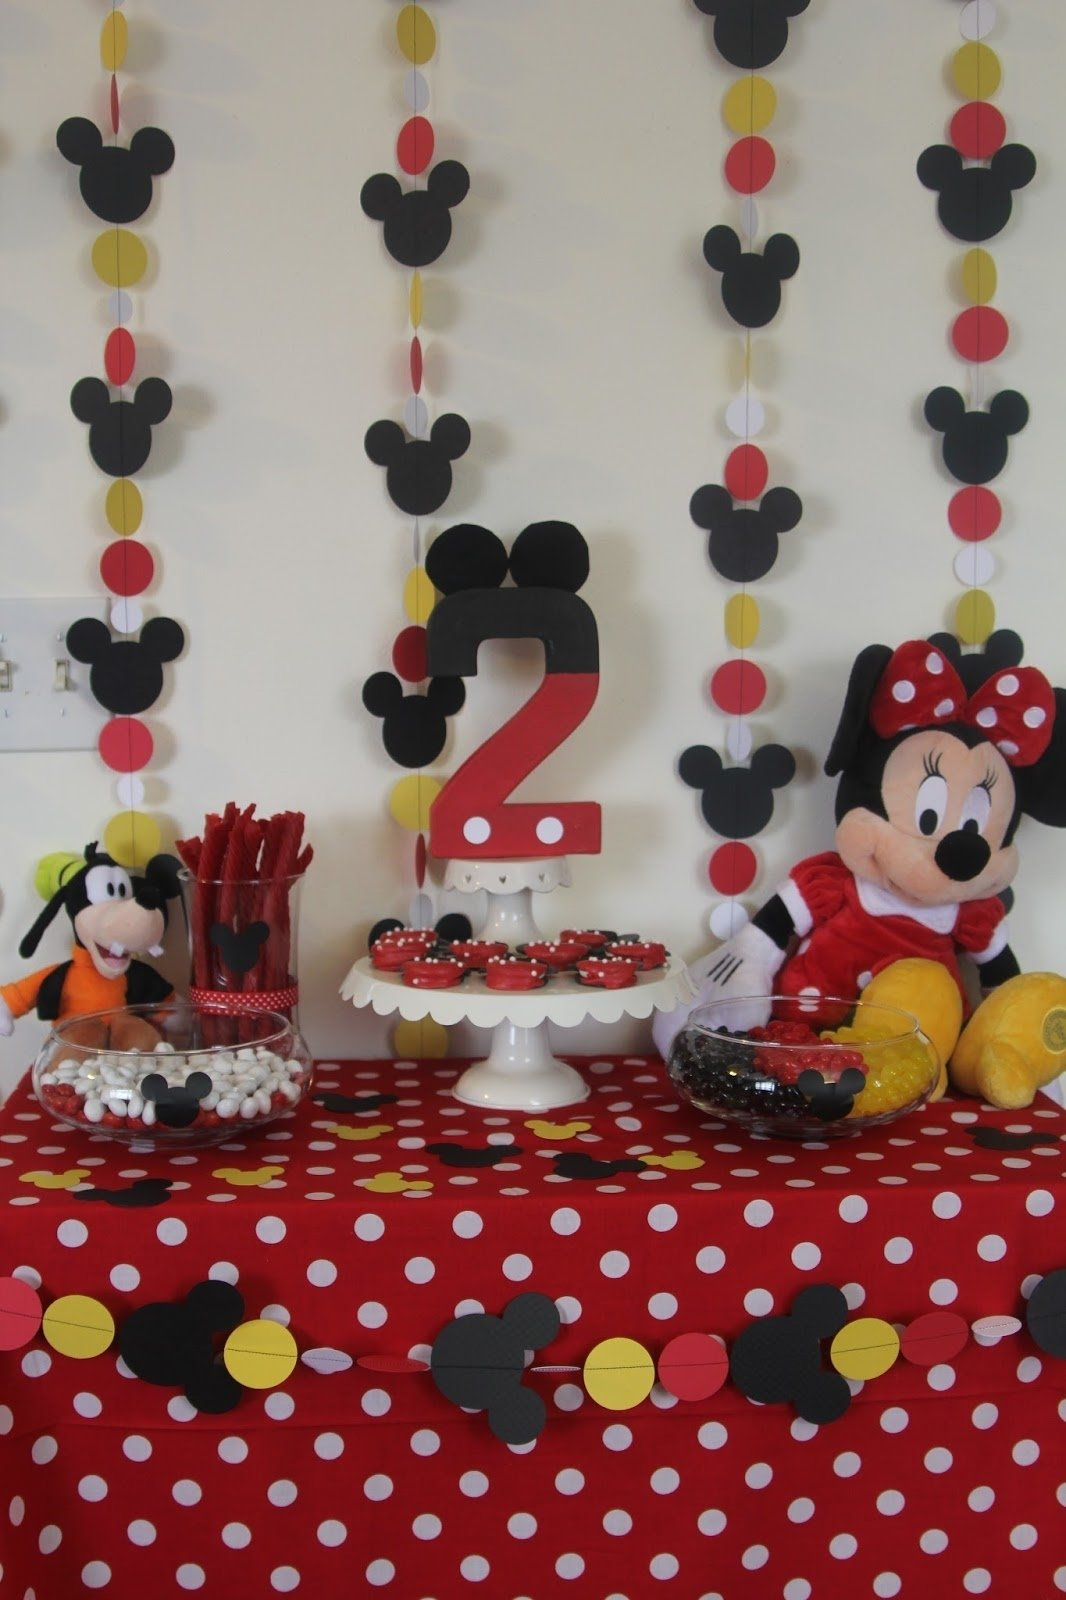 10 Stylish Red Minnie Mouse Party Ideas red and white minnie mouse party decorations prom dresses and beauty 2020